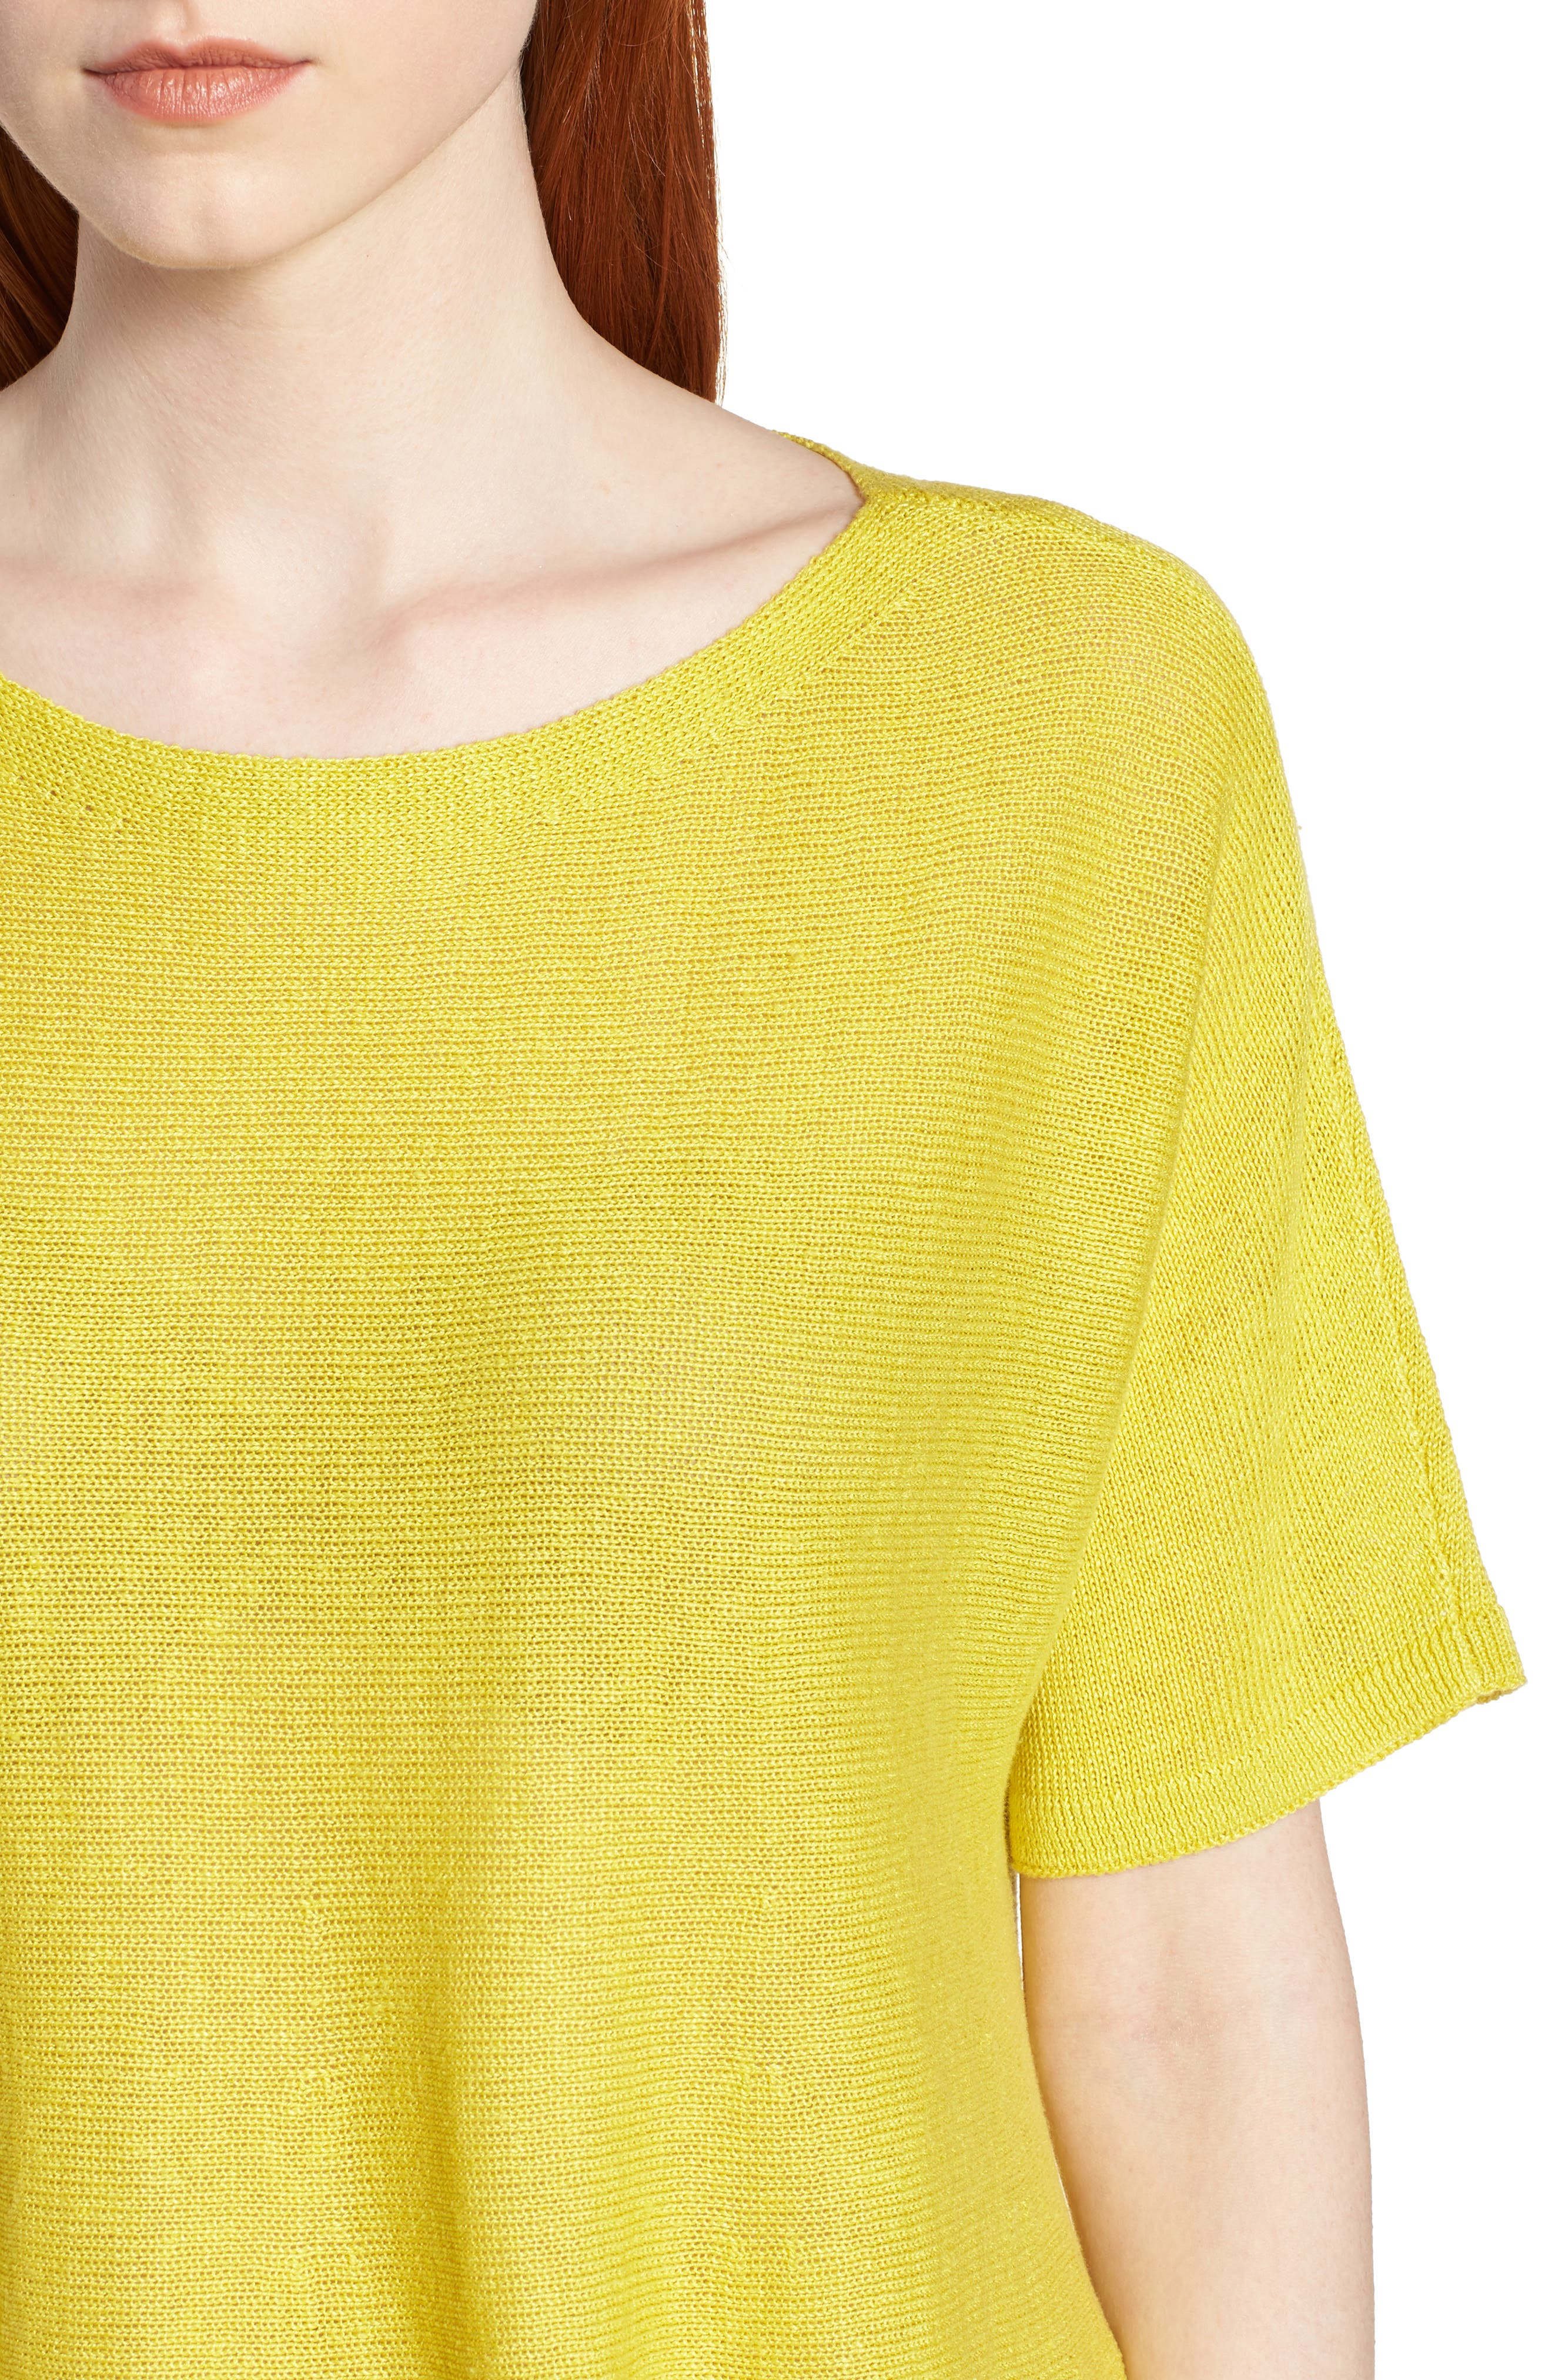 Organic Linen Knit Top,                             Alternate thumbnail 4, color,                             Yarrow